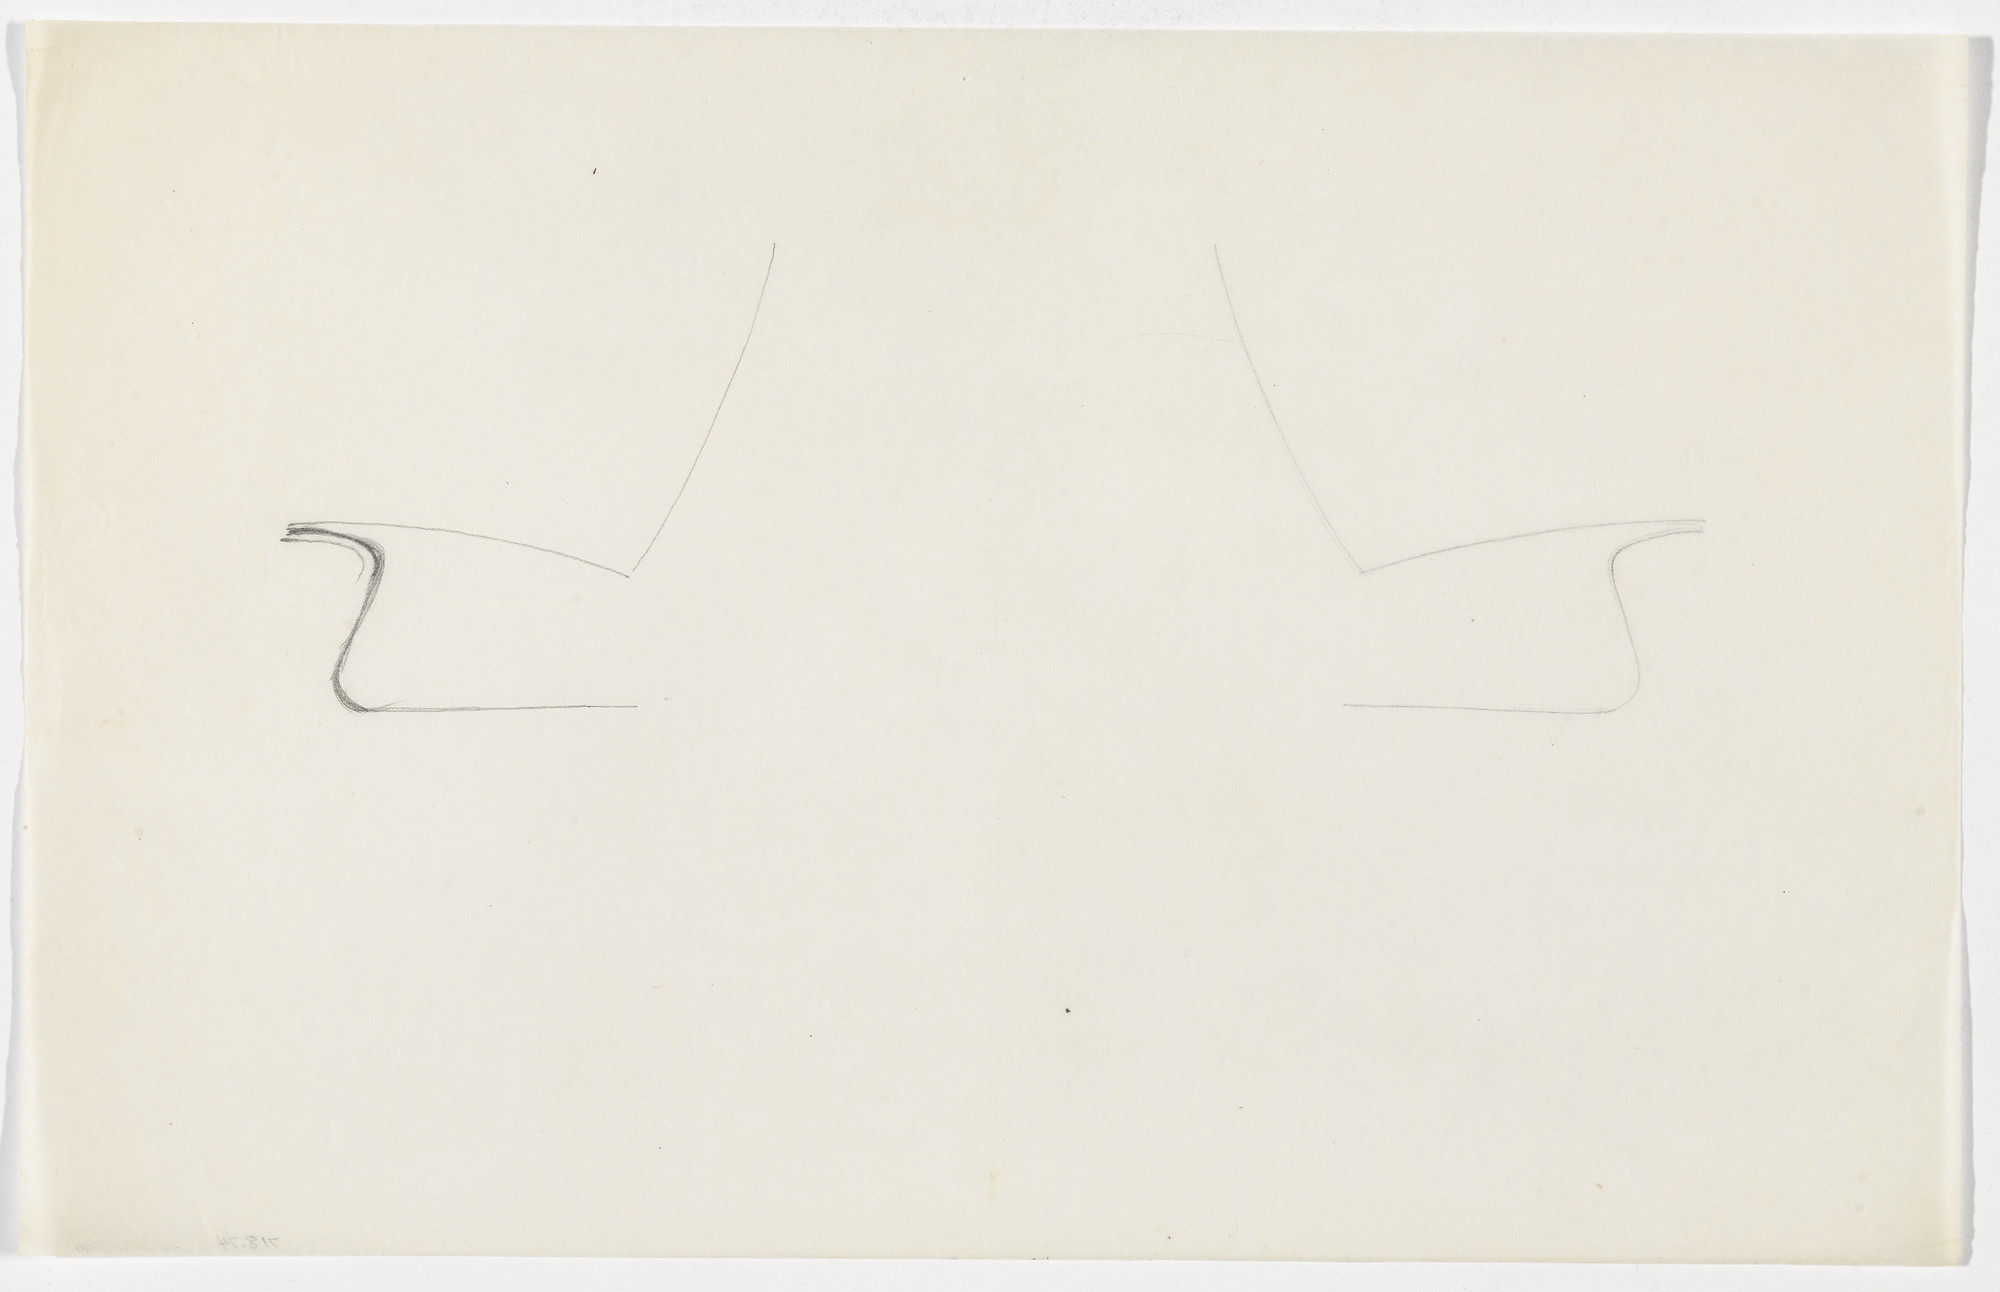 Ludwig Mies van der Rohe. Lounge Chair without Arms (similar to MR60) (Elevation sketch). c.1930